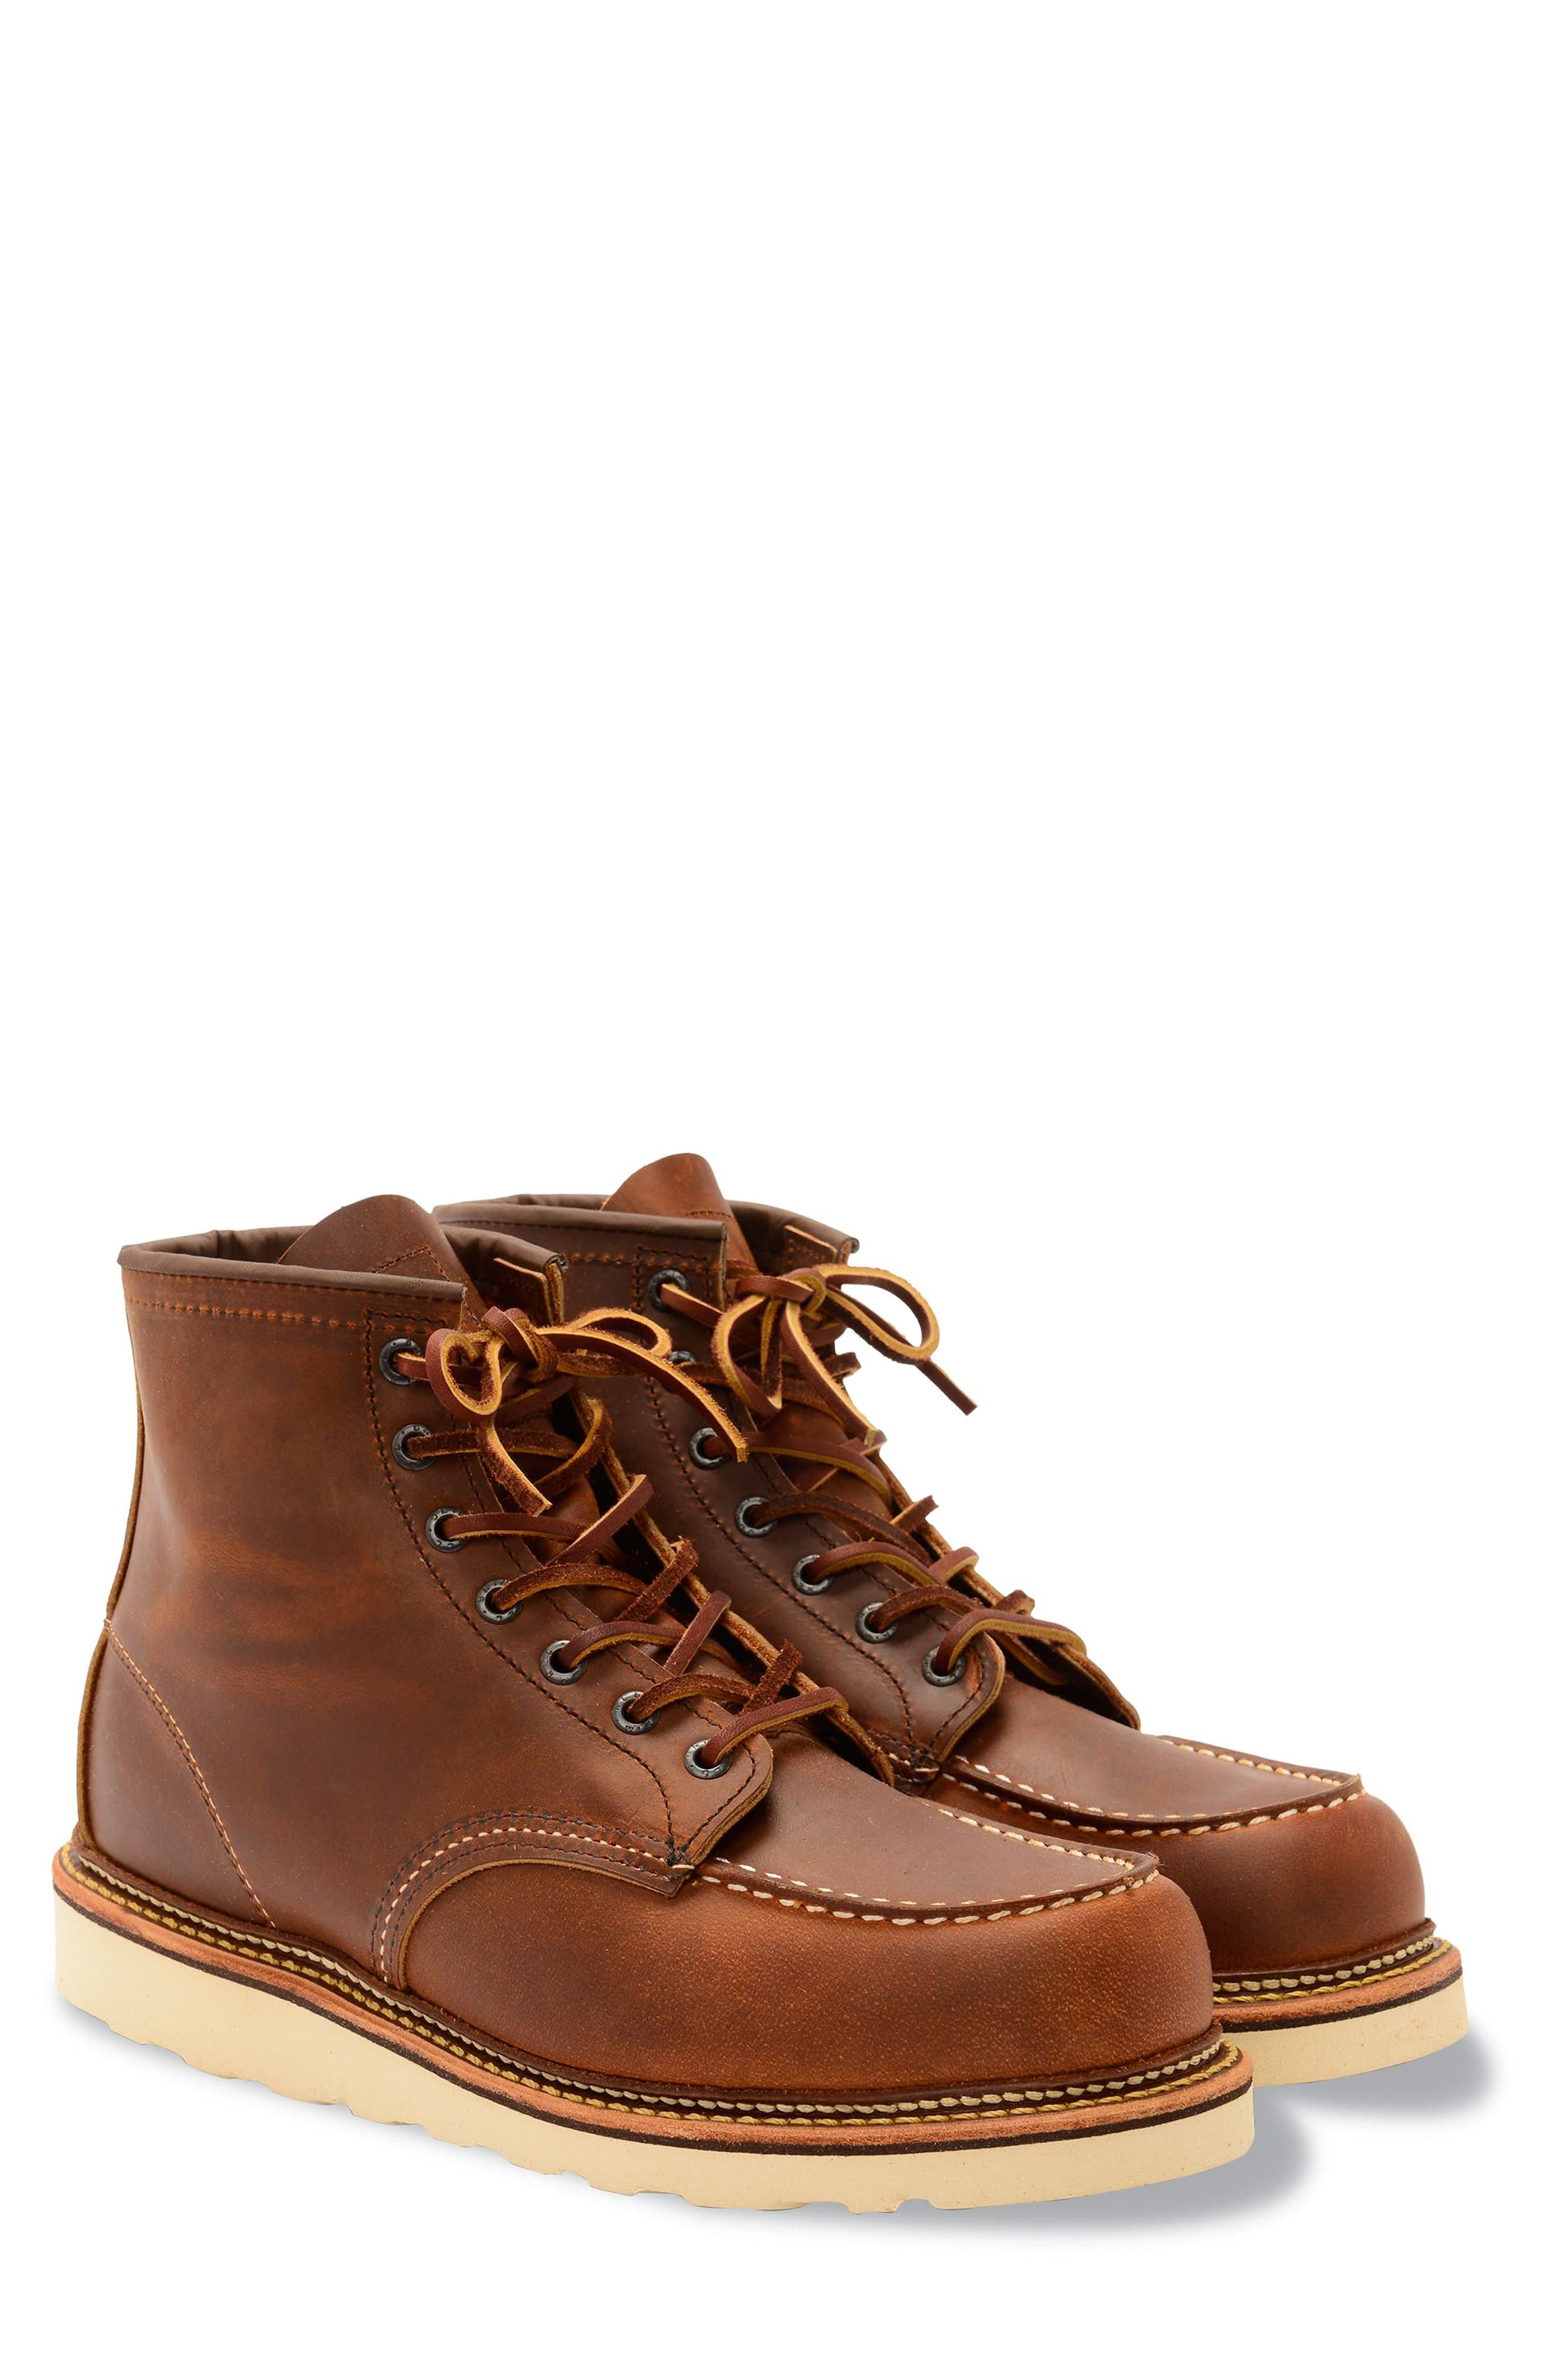 Nordstrom Wing Shoes Boots Red amp; vzq0wI